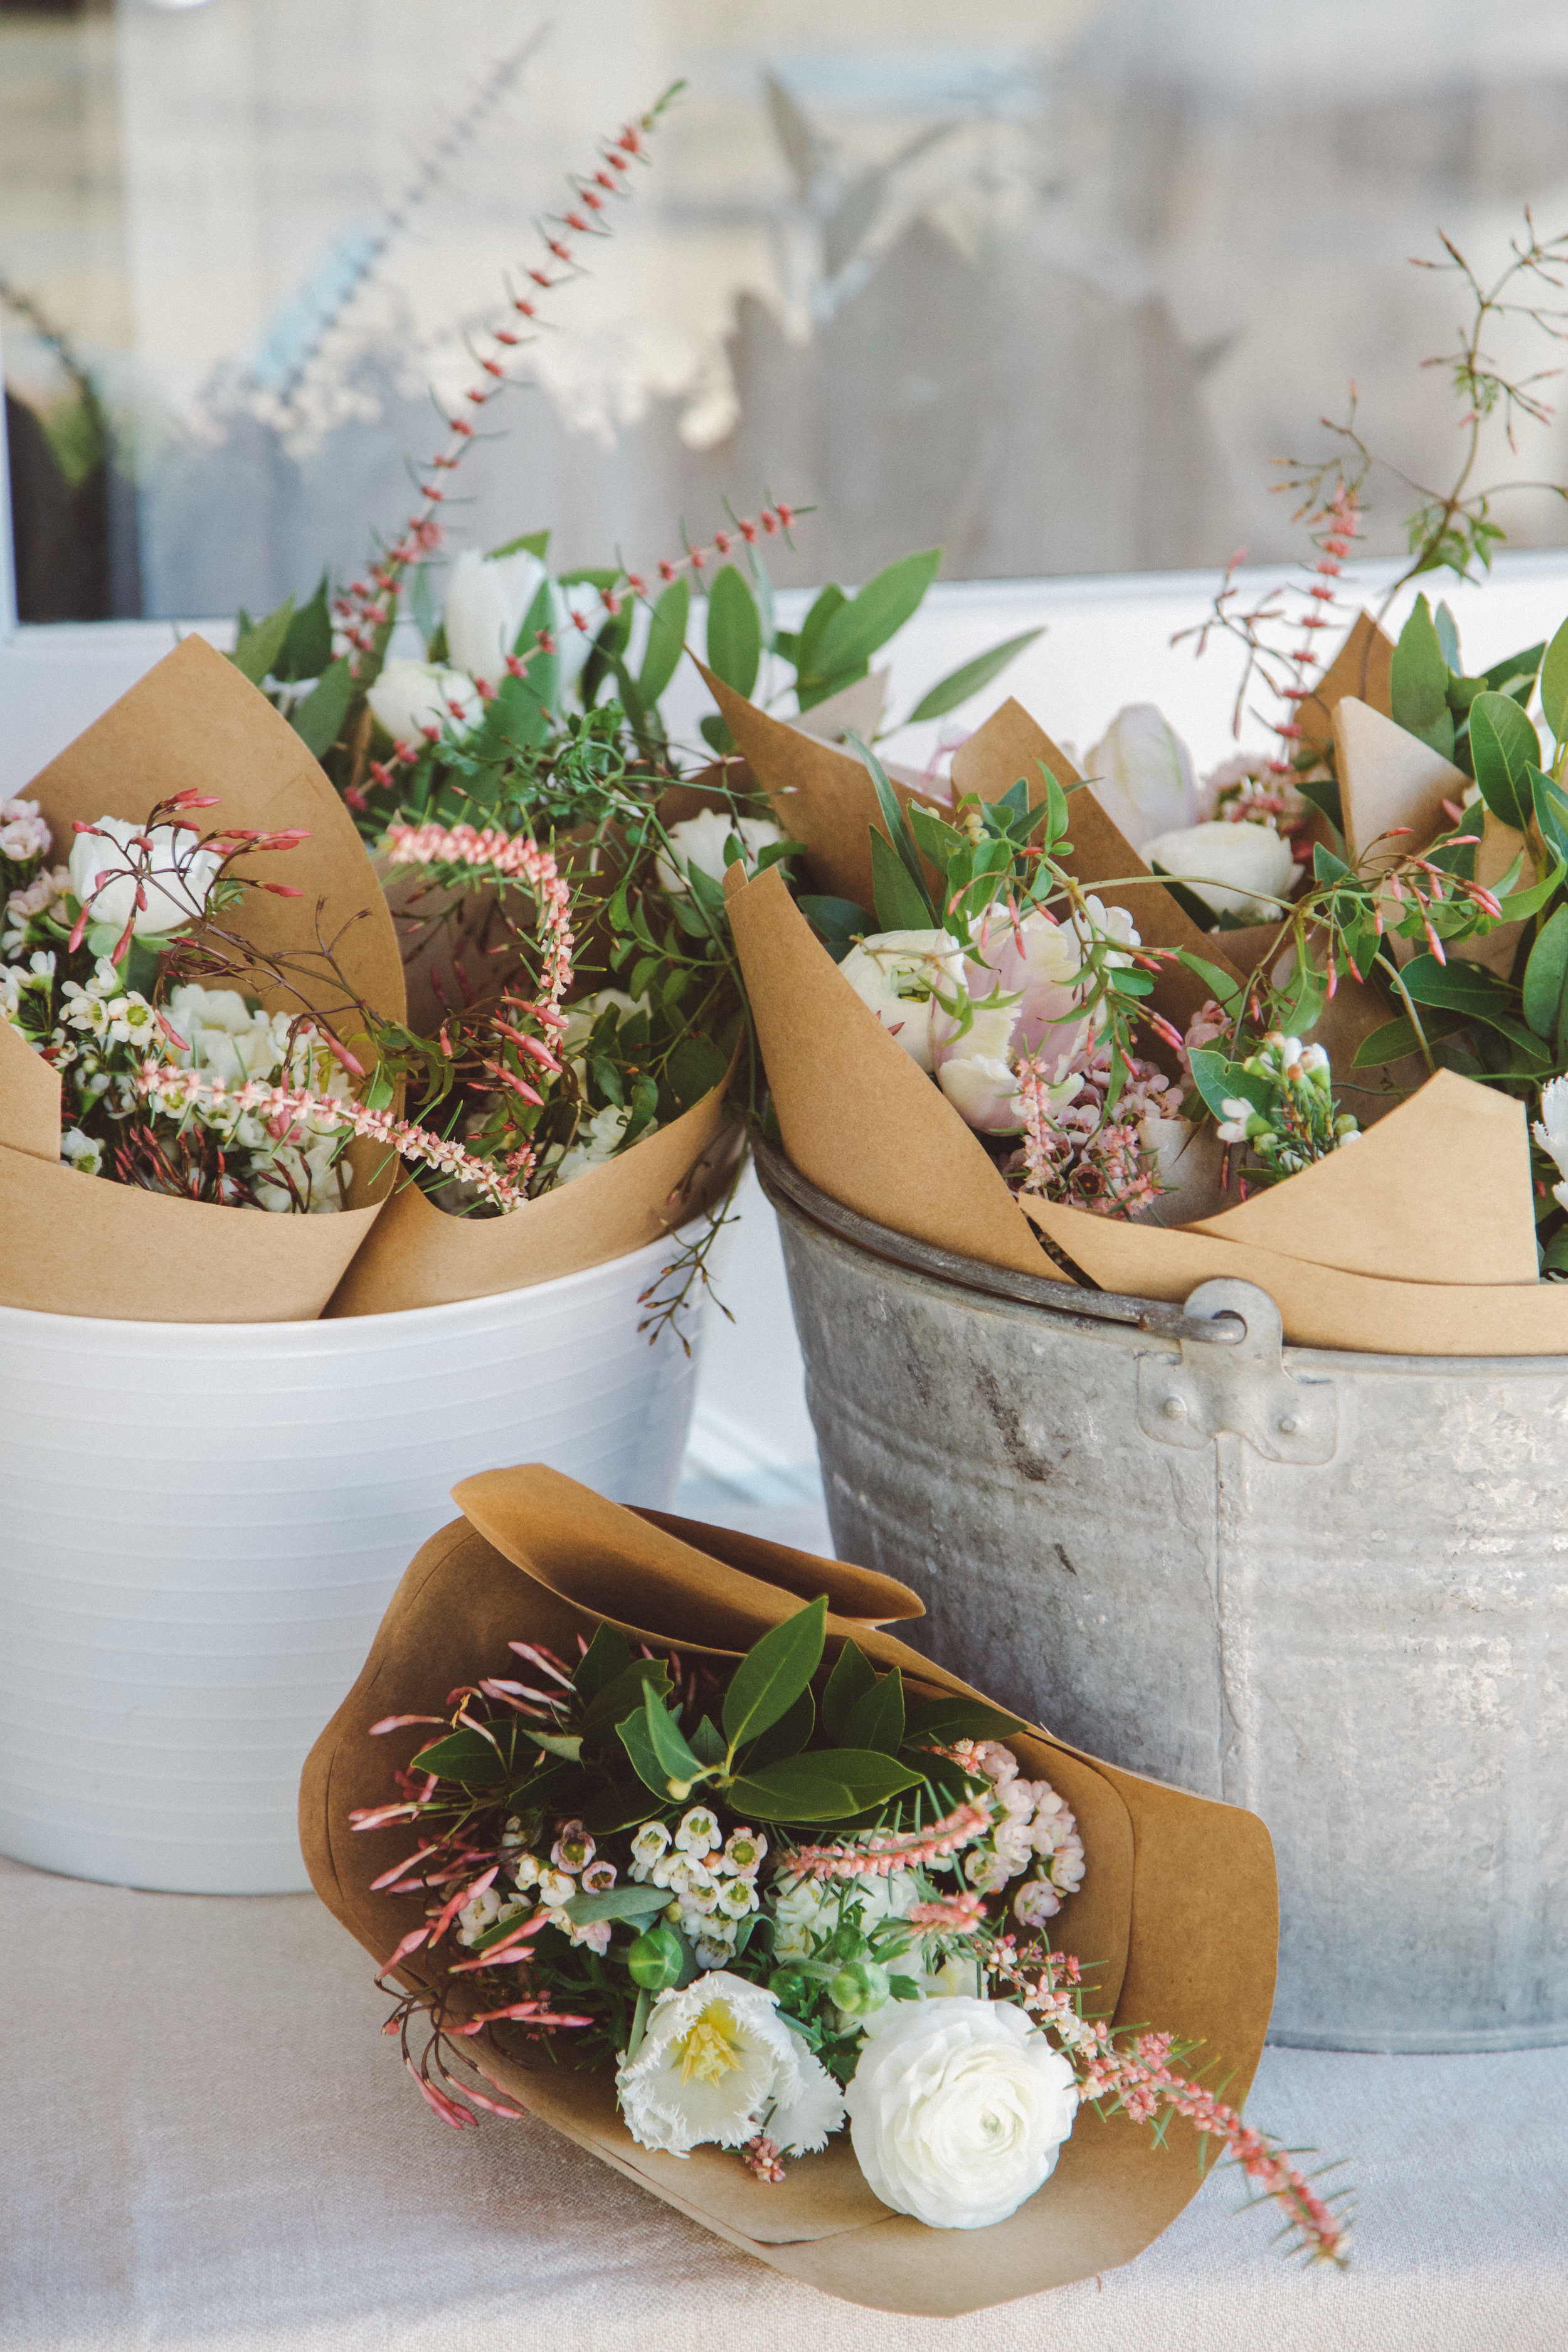 Fundraiser event and floral giveaway at Jenni Kayne, Montecito